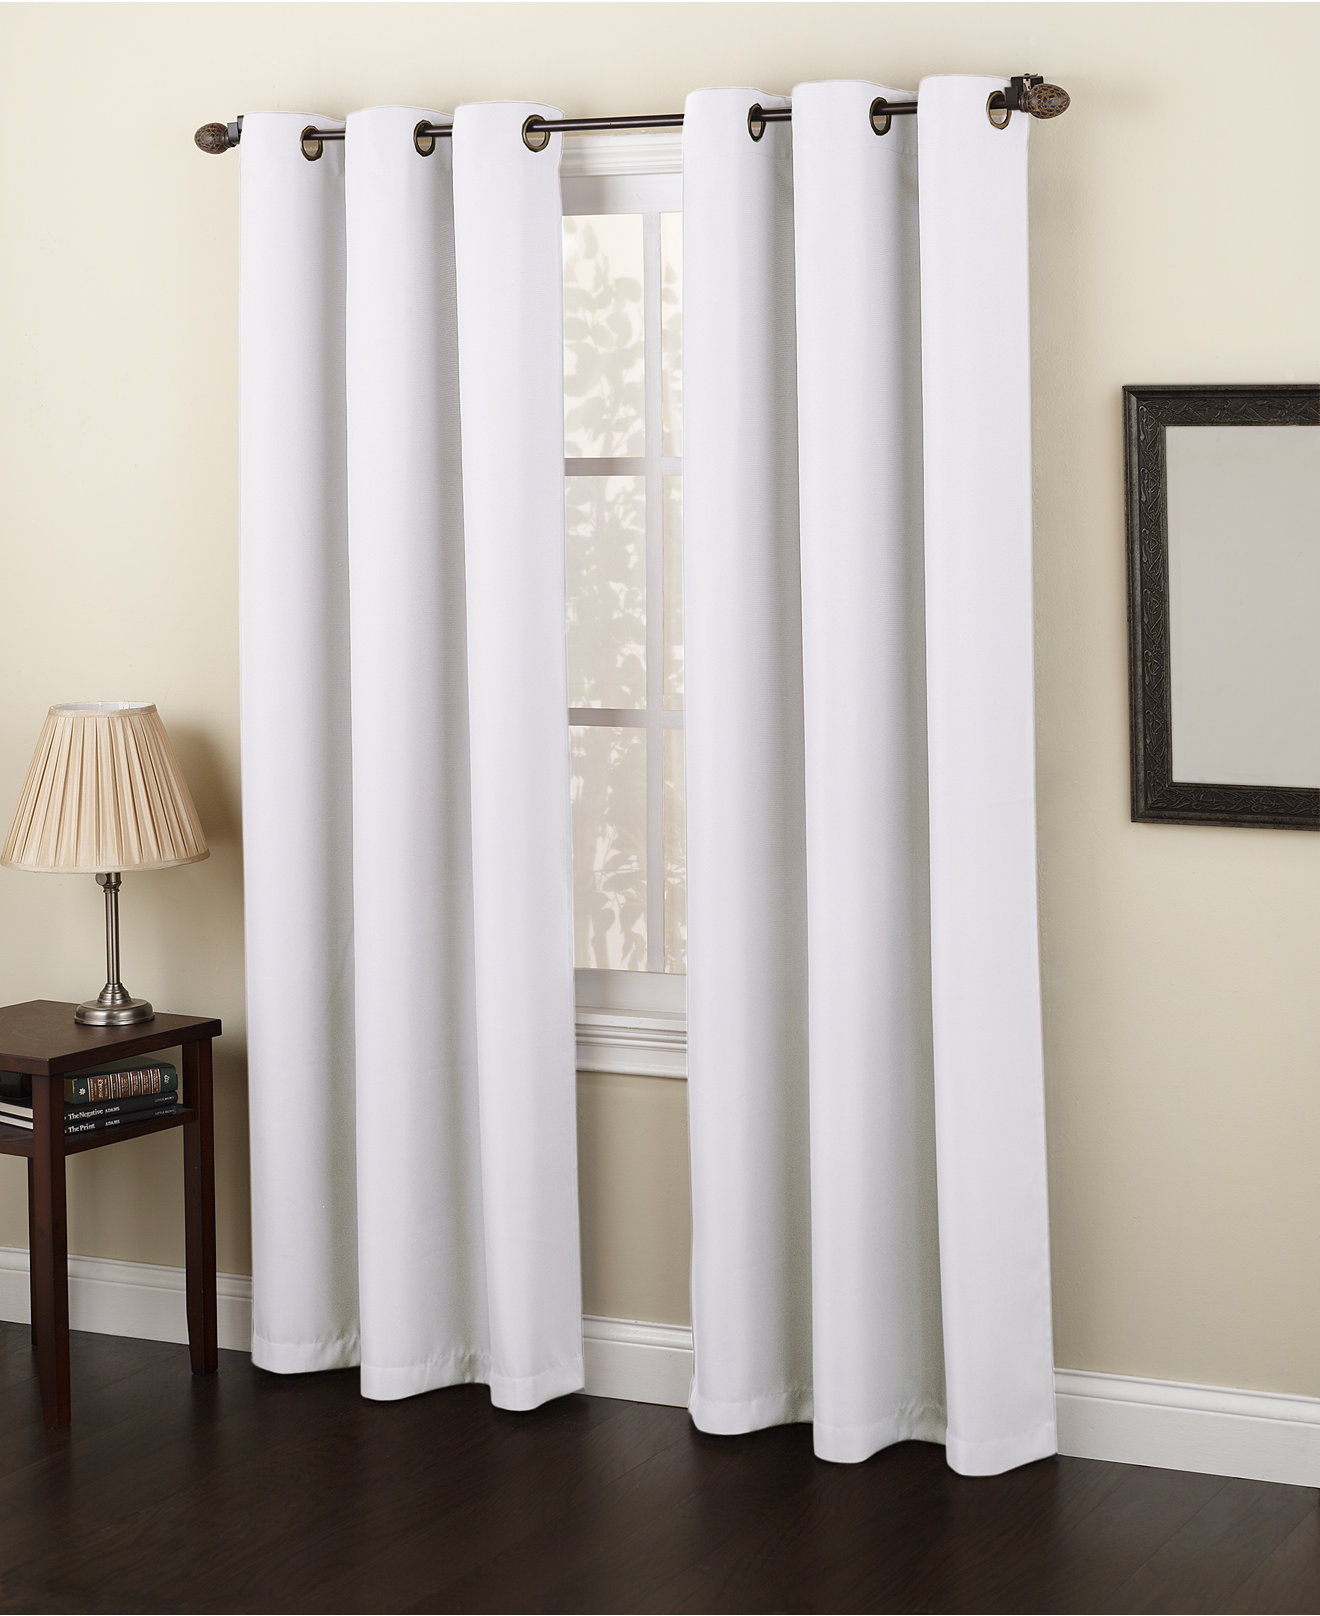 Short Blackout Curtains | Blackout Lined Curtains | Cheap Blackout Curtains